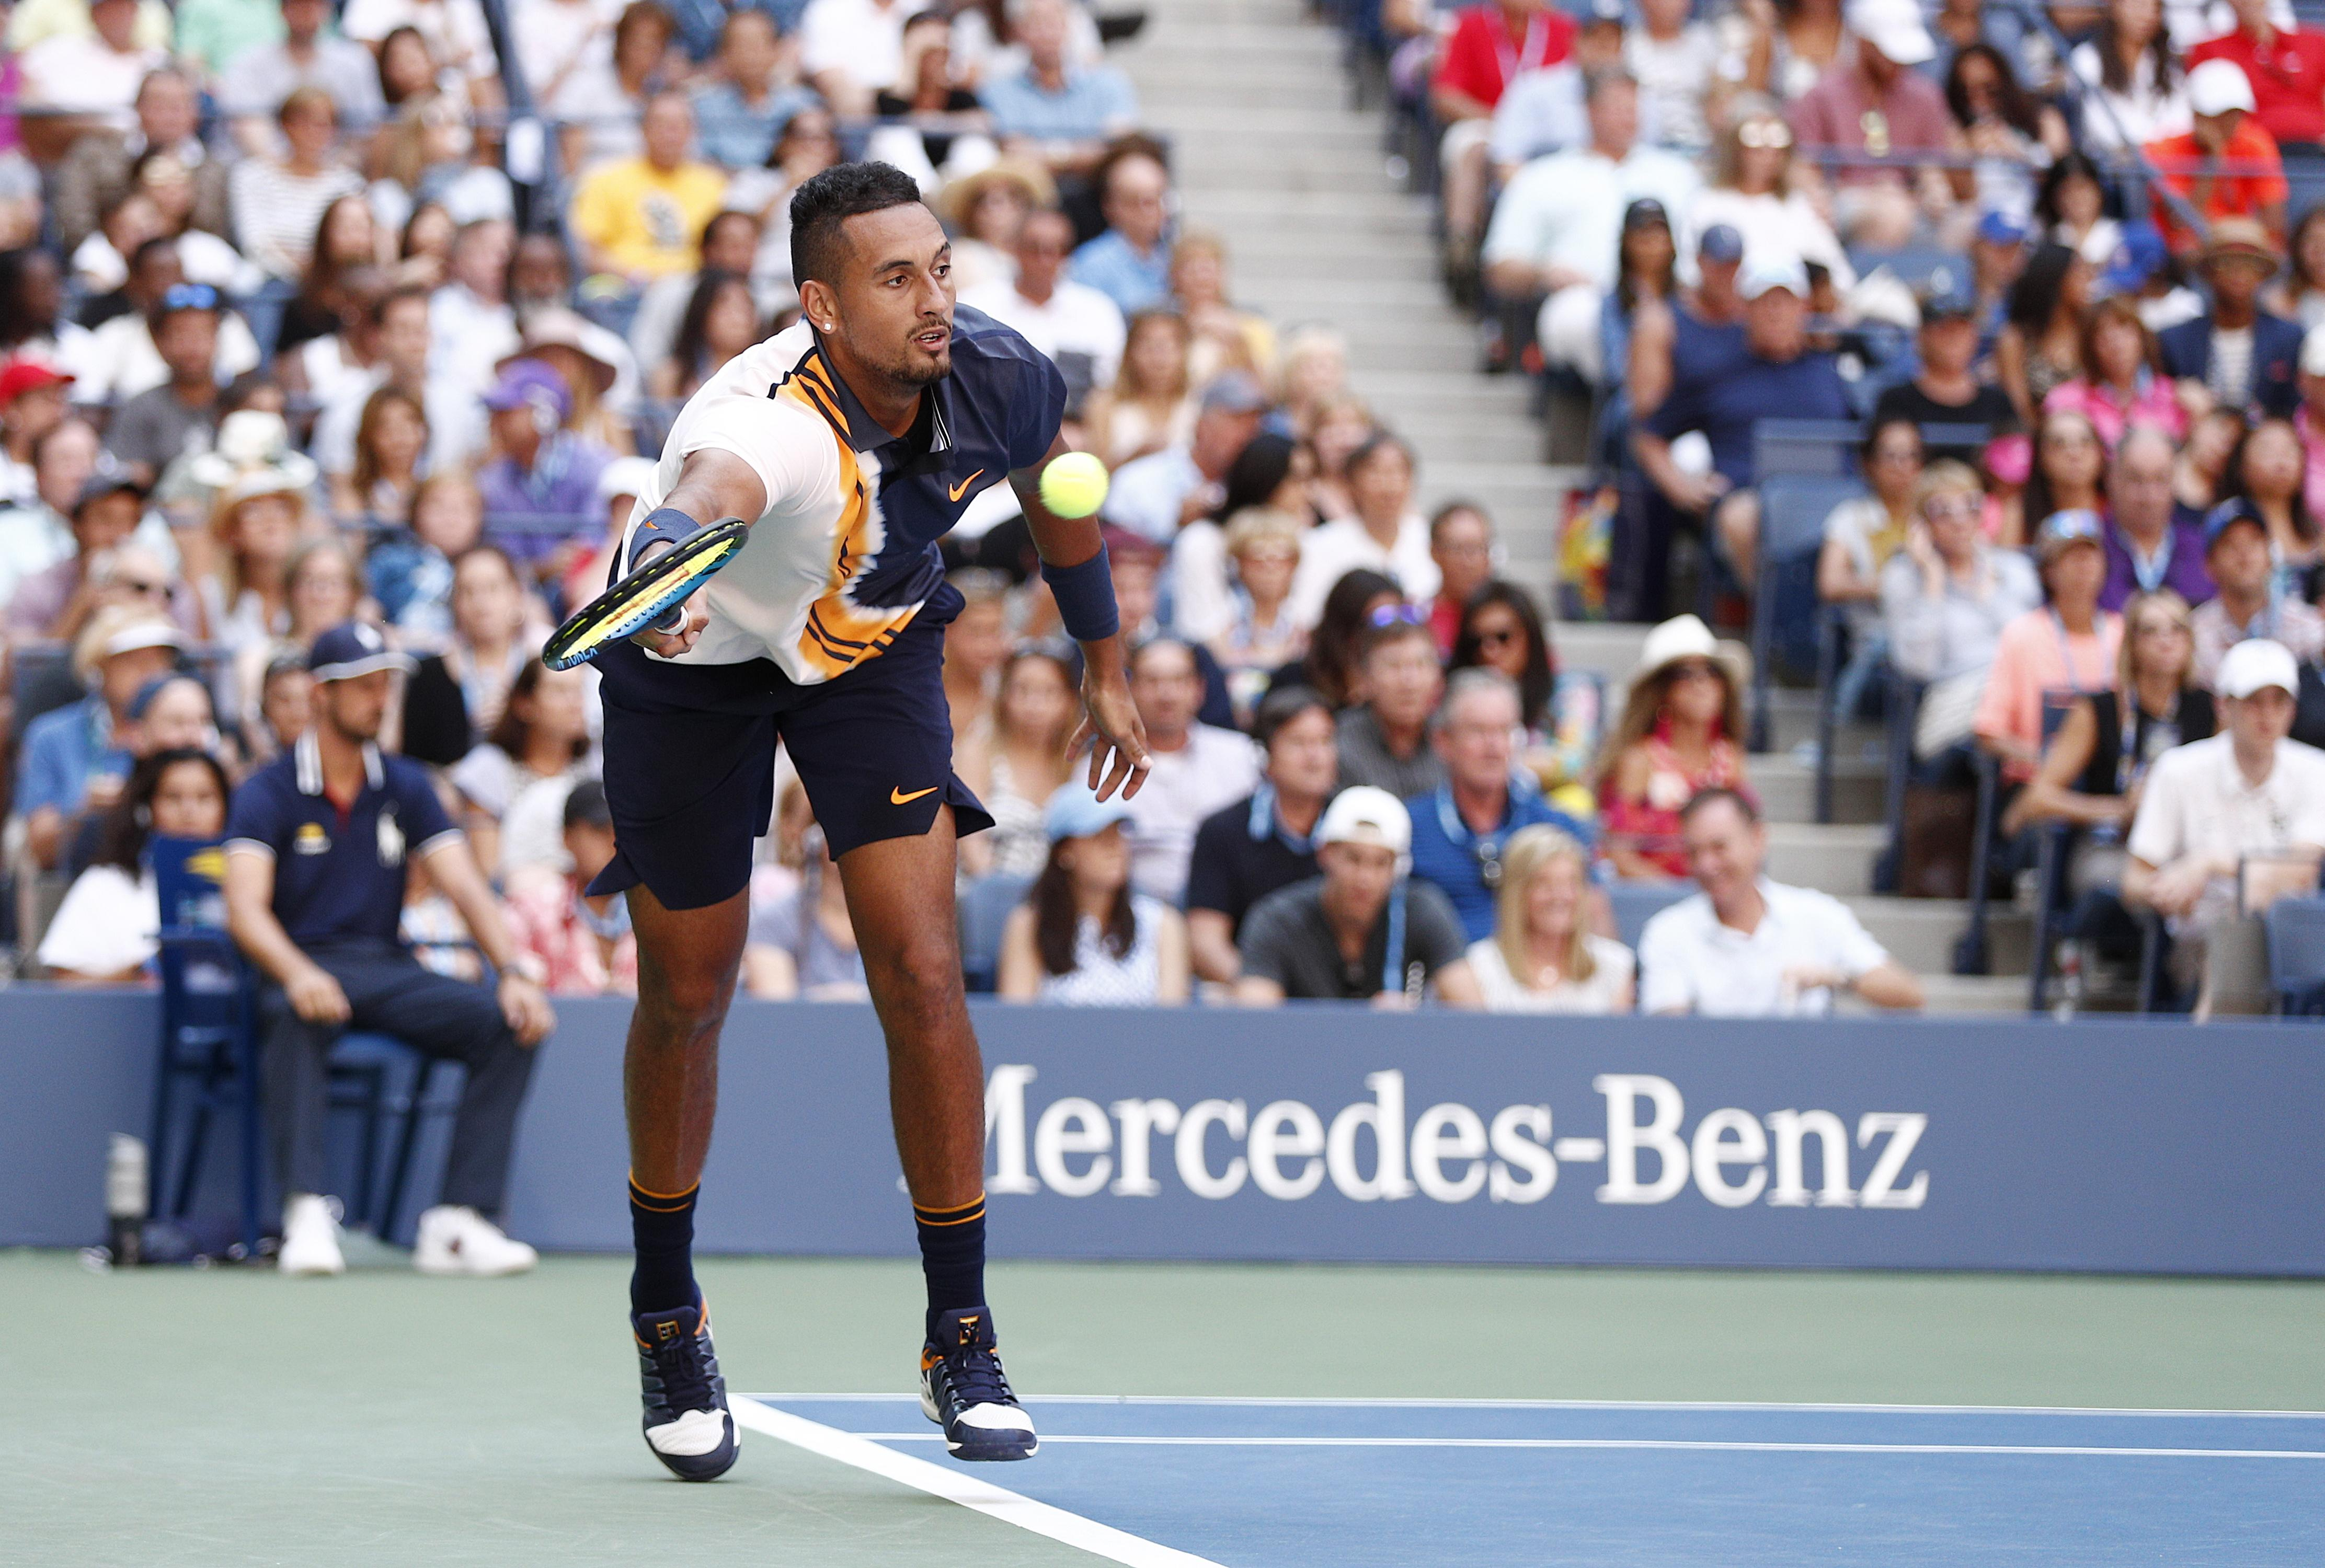 The 23-year-old started well and looked to put the world No2 under pressure early on in the first set